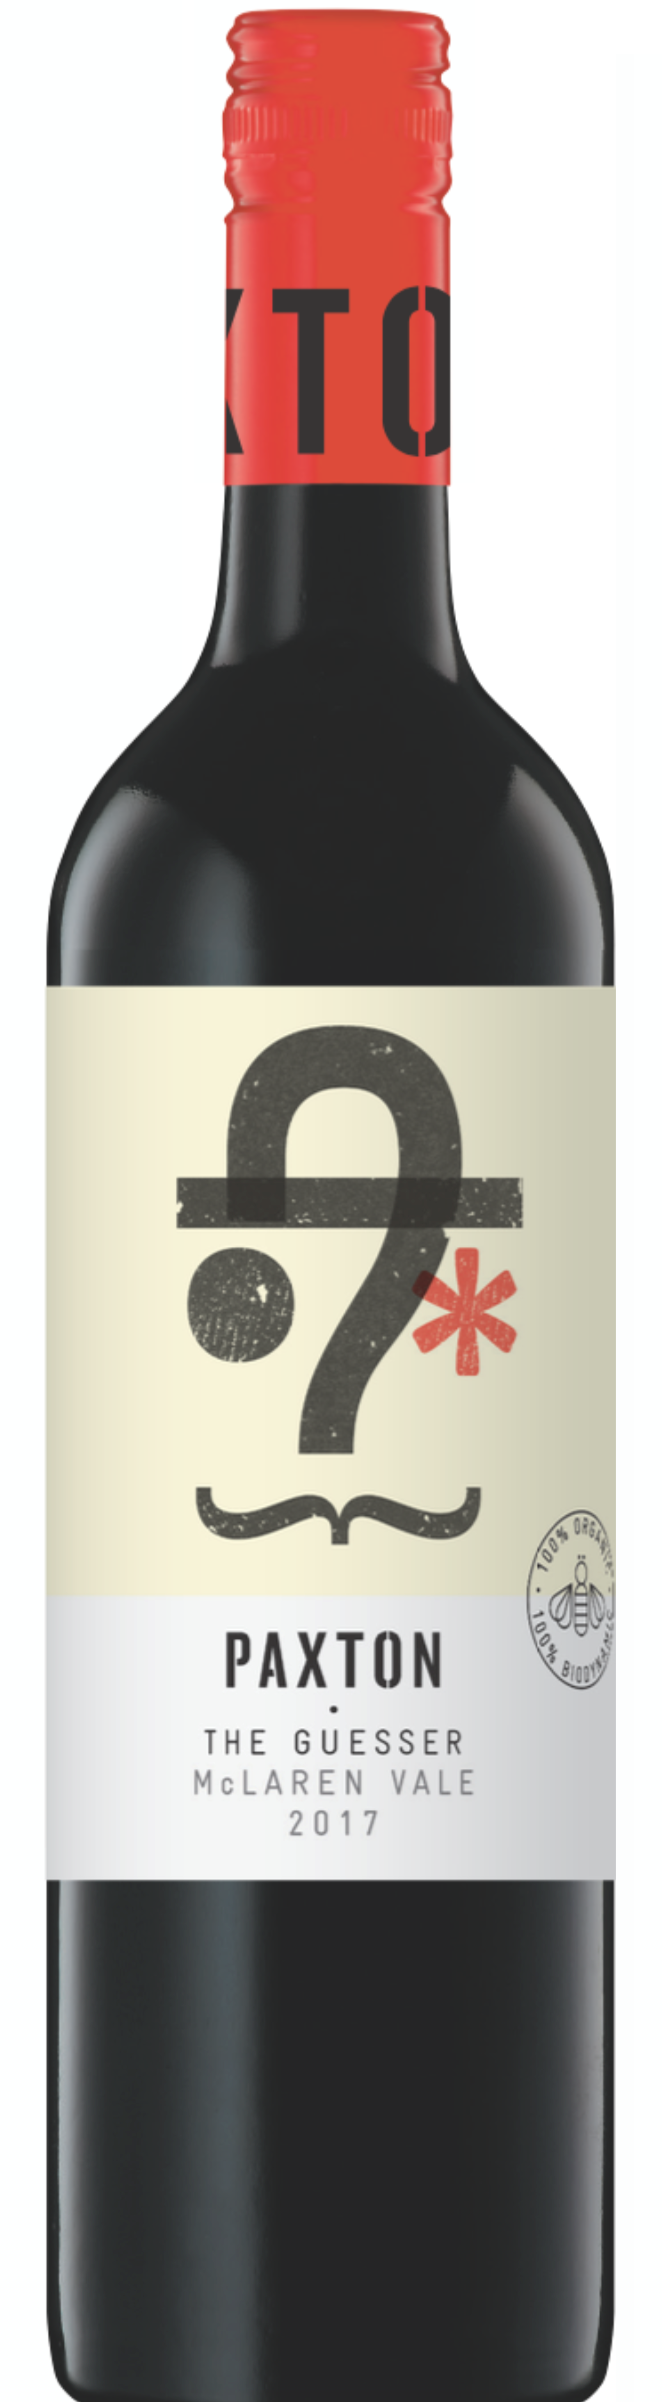 Paxton 'The Guesser' Organic Red Blend 2017-0